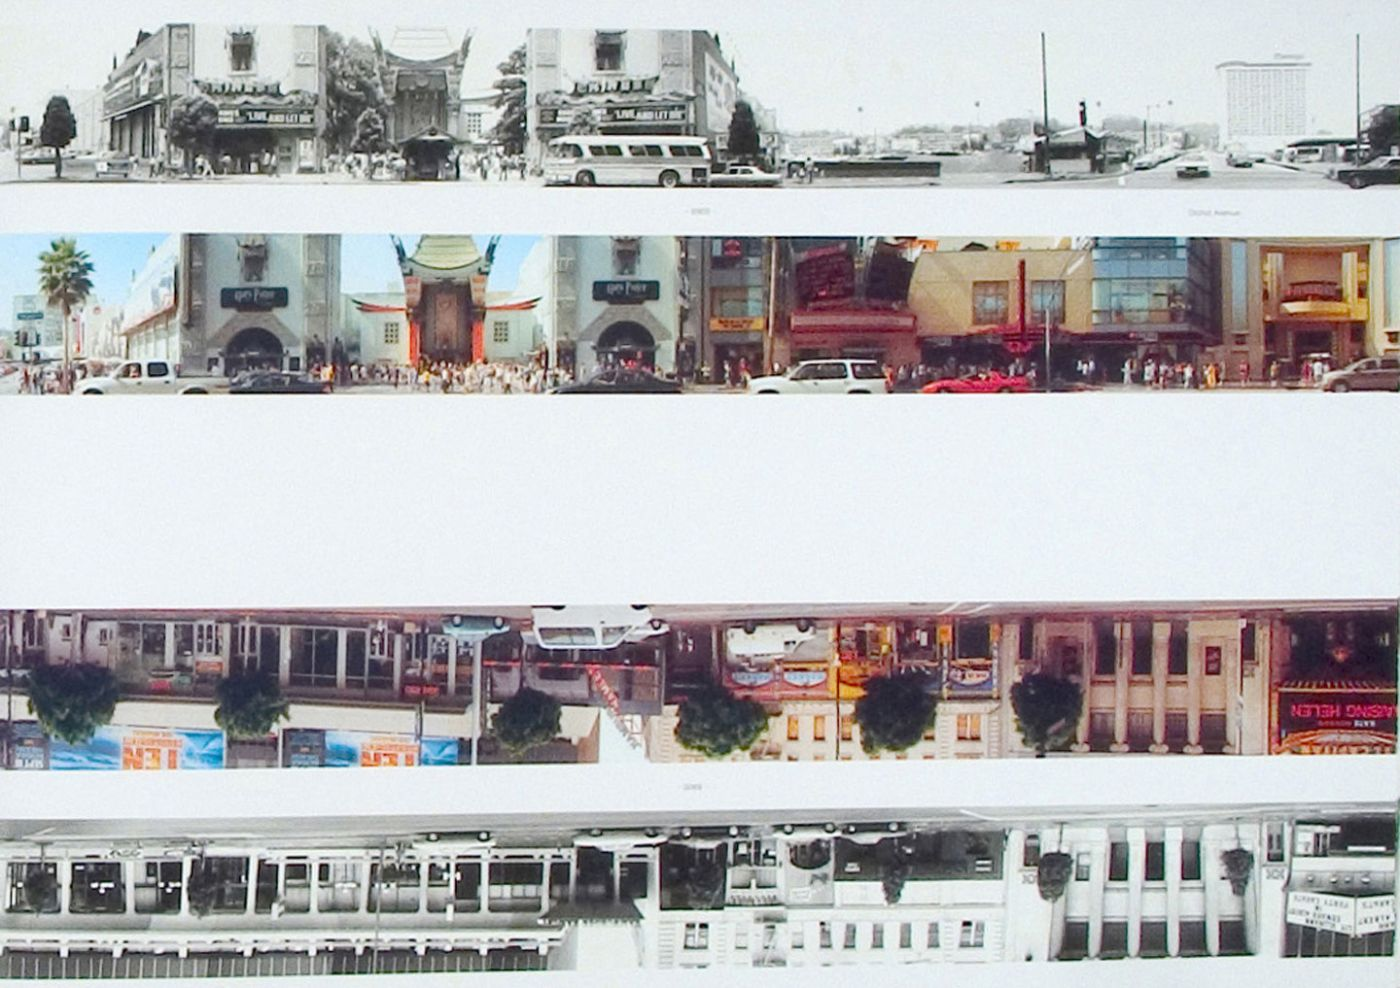 Ed Ruscha: Then & Now, Hollywood Boulevard 1973-2004 (New)